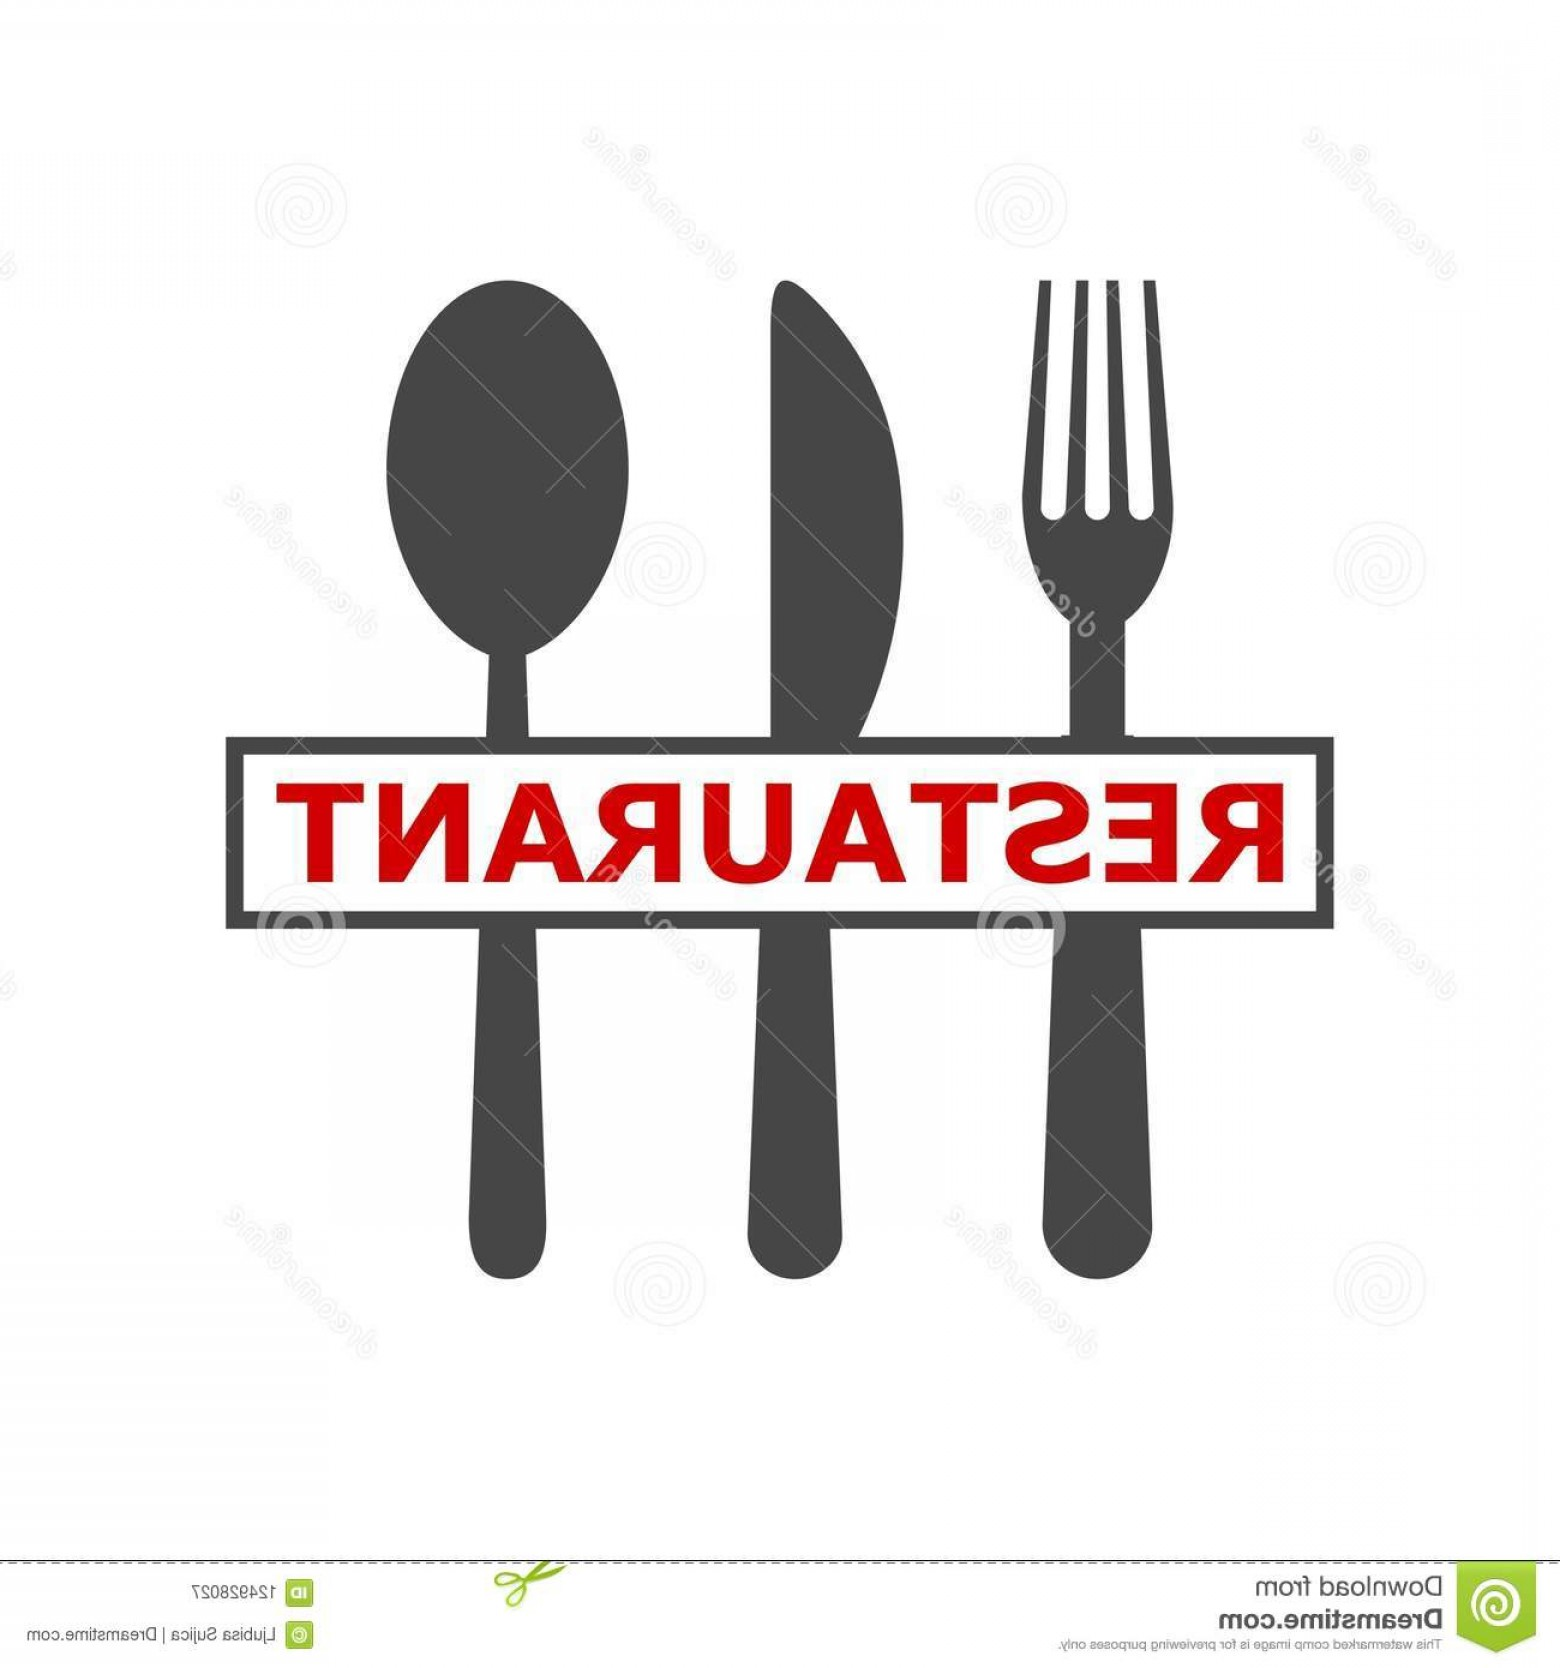 Modern Knife Fork And Spoon Vector Logo: Sign Spoon Fork Knife Besteck Logo Logo Modern Restaurant Sign Spoon Fork Knife Besteck Logo Logo Modern Image